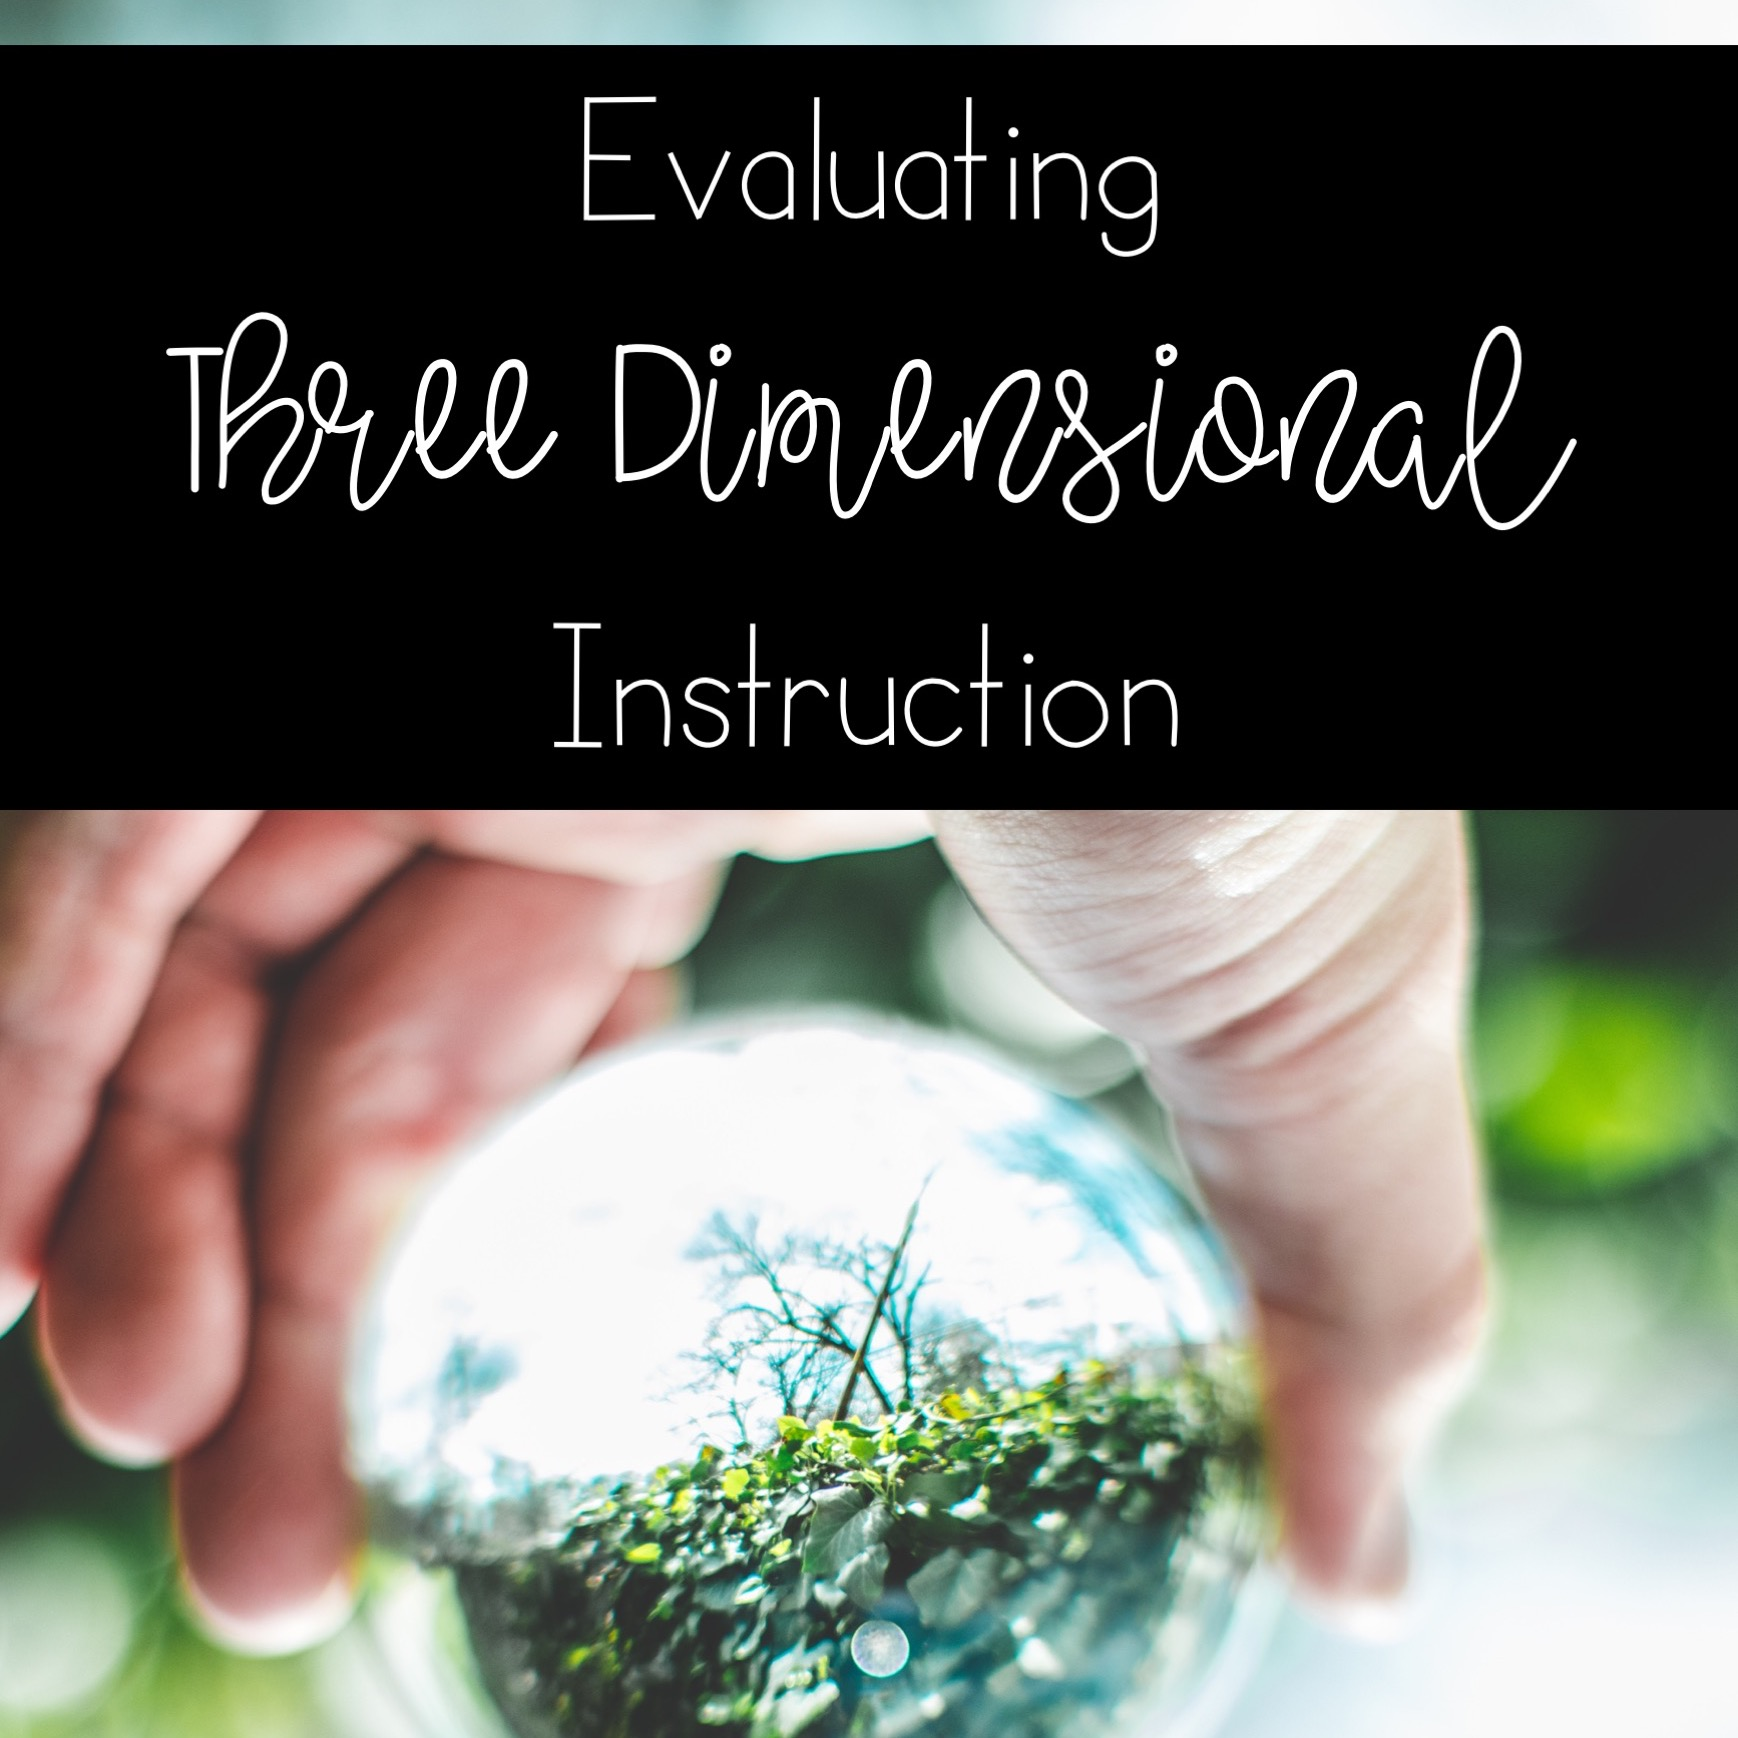 evaluate your implementation of three dimensional instruction